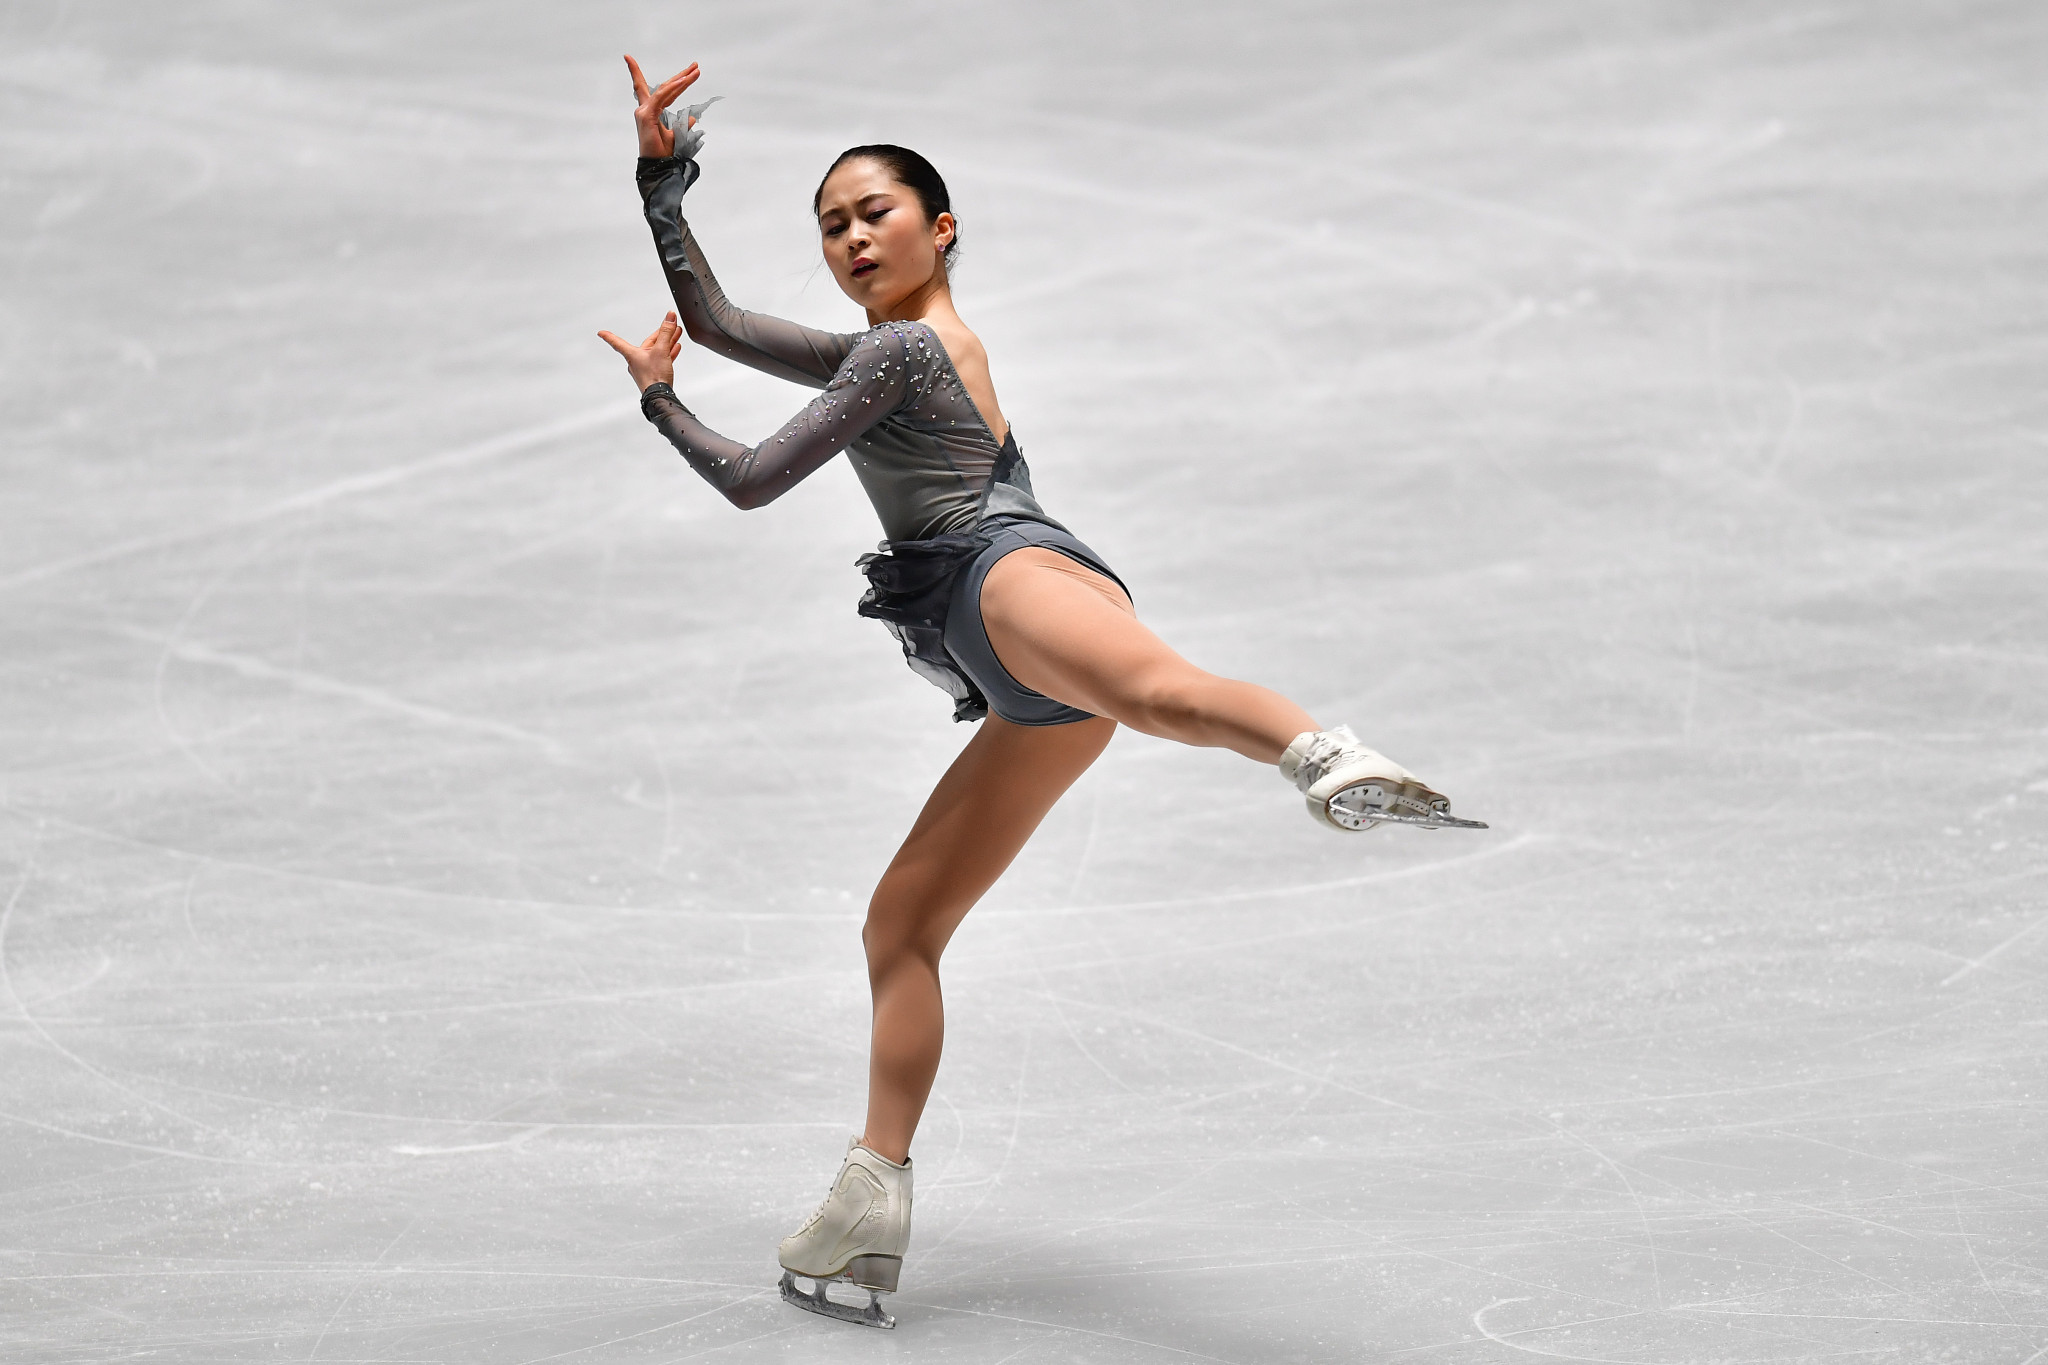 Japan's two-time world medallist Satoko Miyahara had been due to compete at Skate Canada ©Getty Images